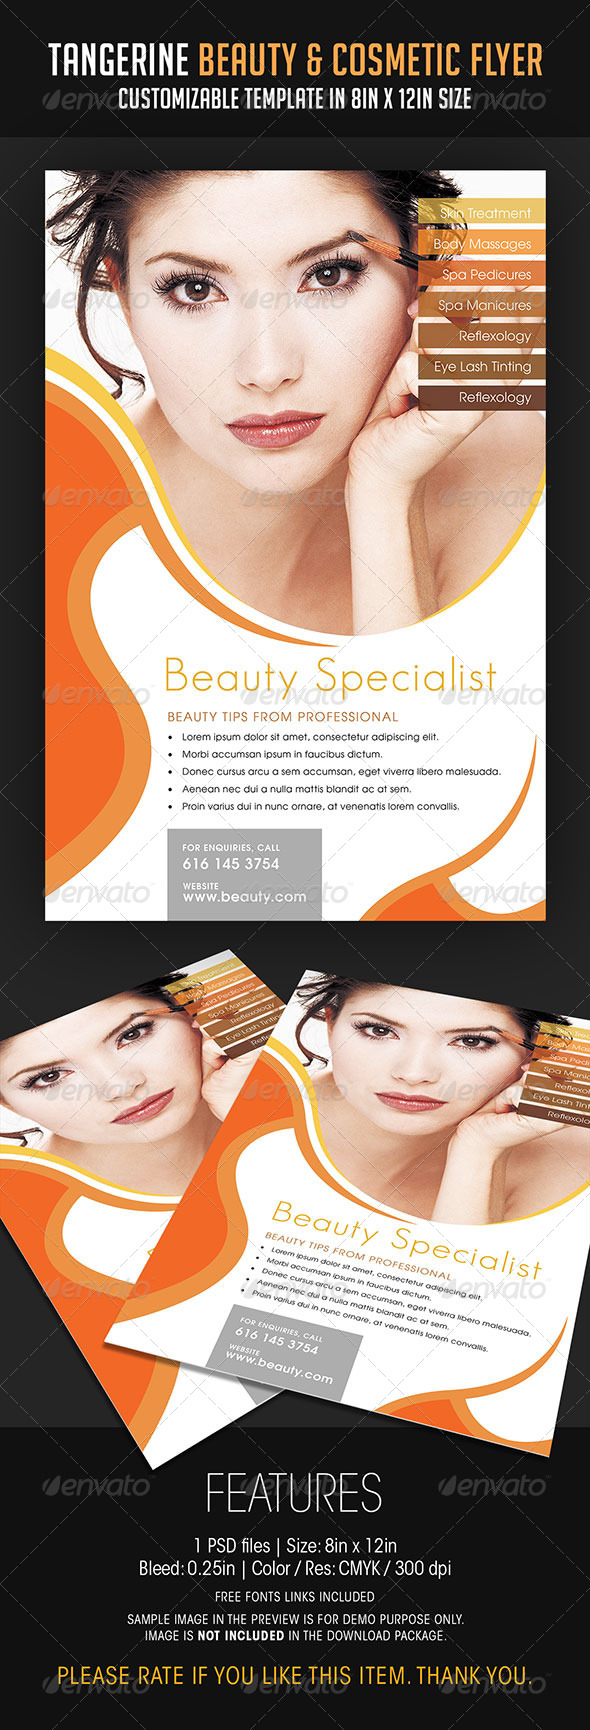 Tangerine Beauty and Cosmetic Flyer - Flyers Print Templates